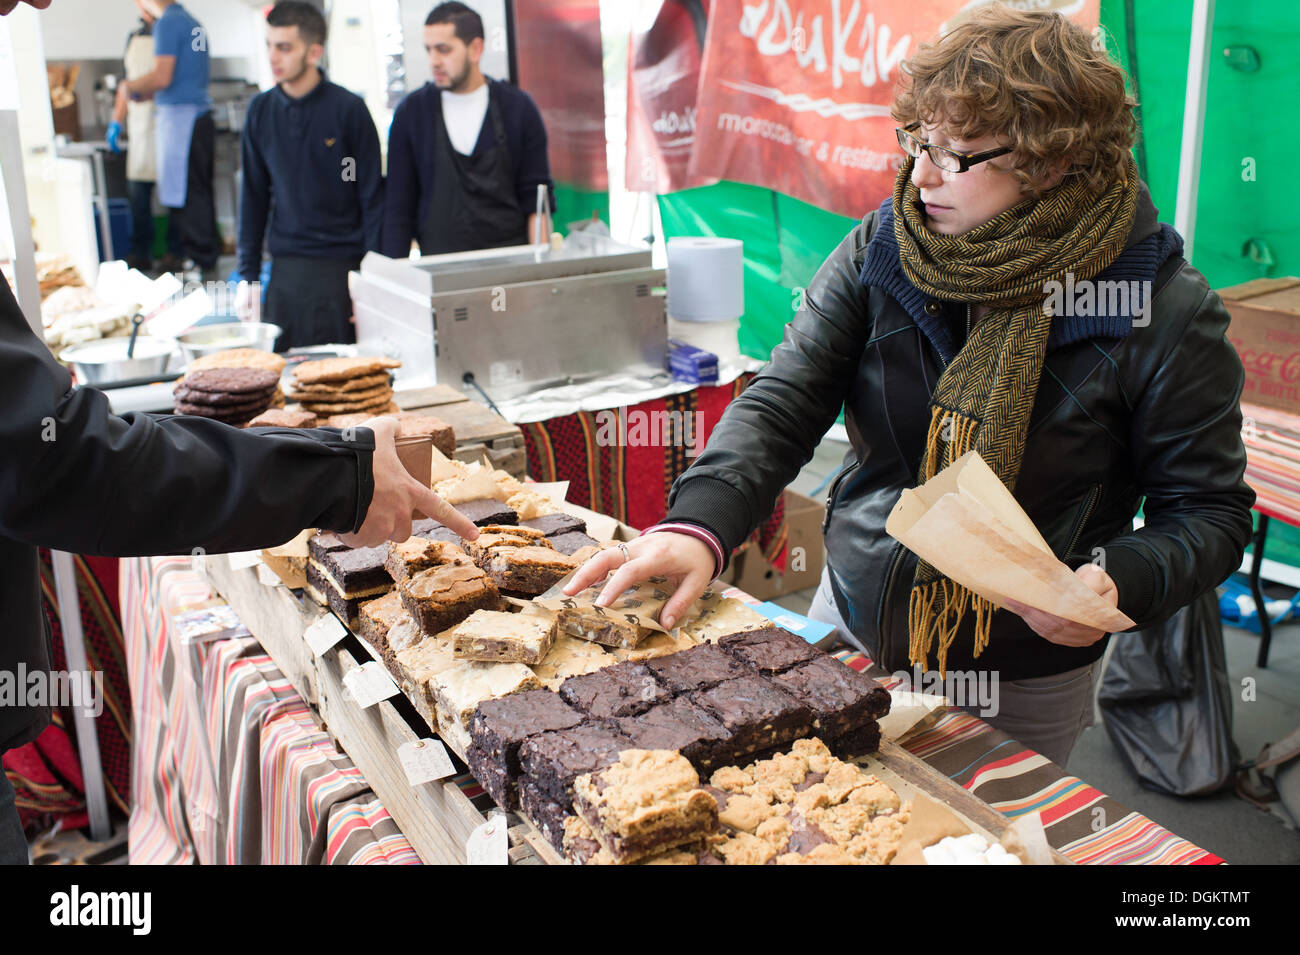 Artisan bakeries from across London set up their stalls on the South Bank to show and sell their wares at The Real Bread Festiva - Stock Image